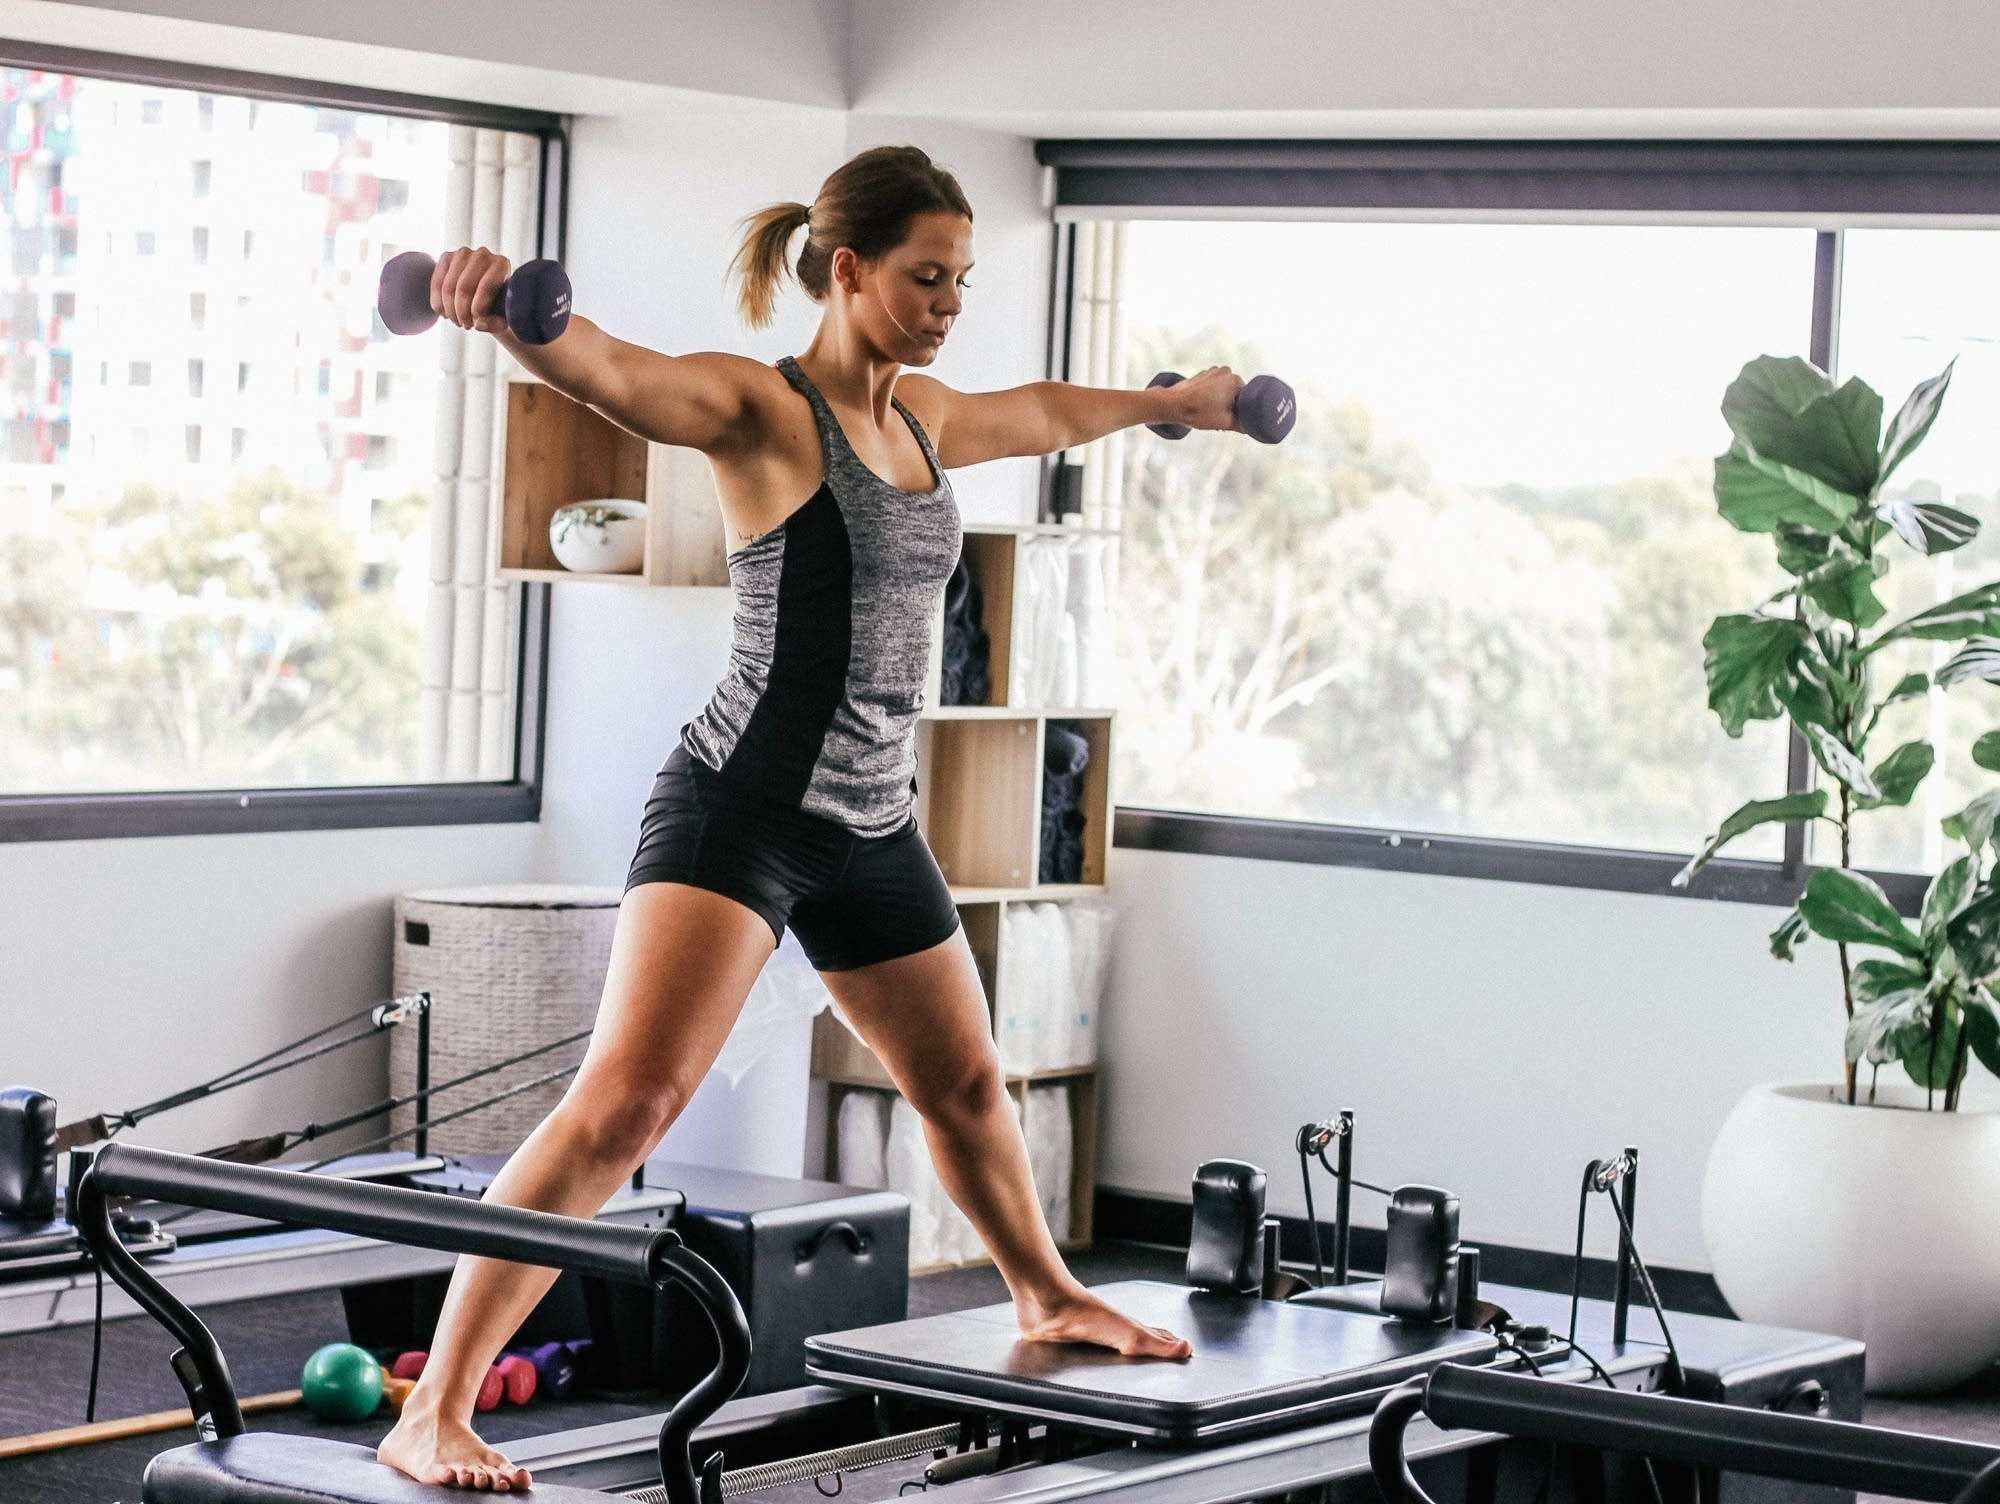 A woman exercises at home.